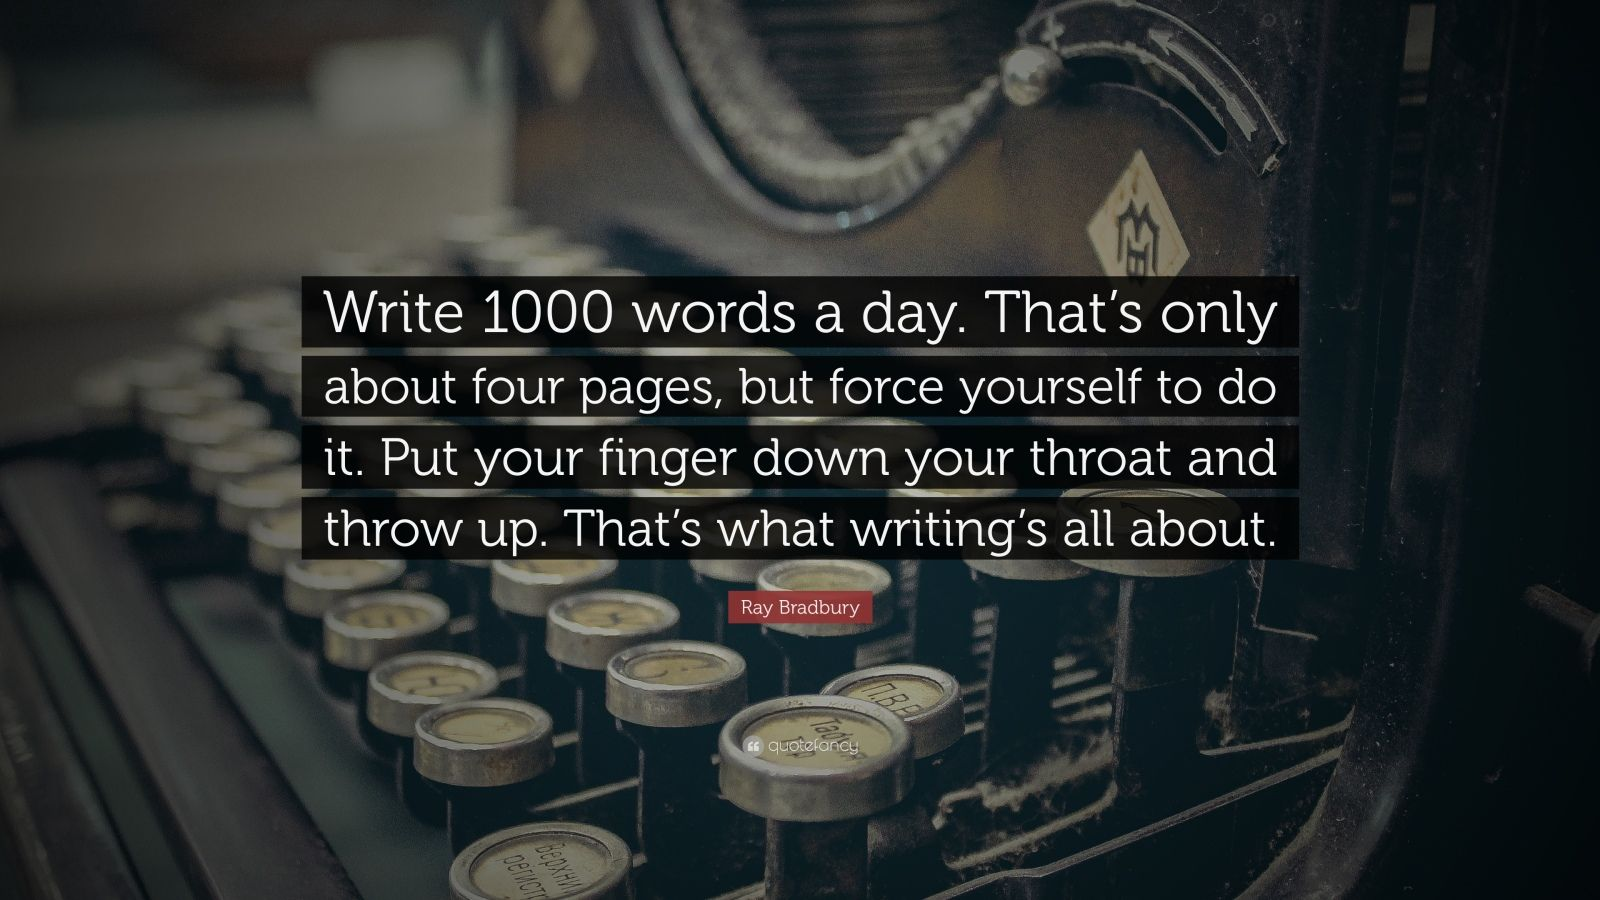 """Ray Bradbury Quote: """"Write 1000 words a day. That's only about four pages, but force yourself to do it. Put your finger down your throat and throw up. That's what writing's all about."""""""